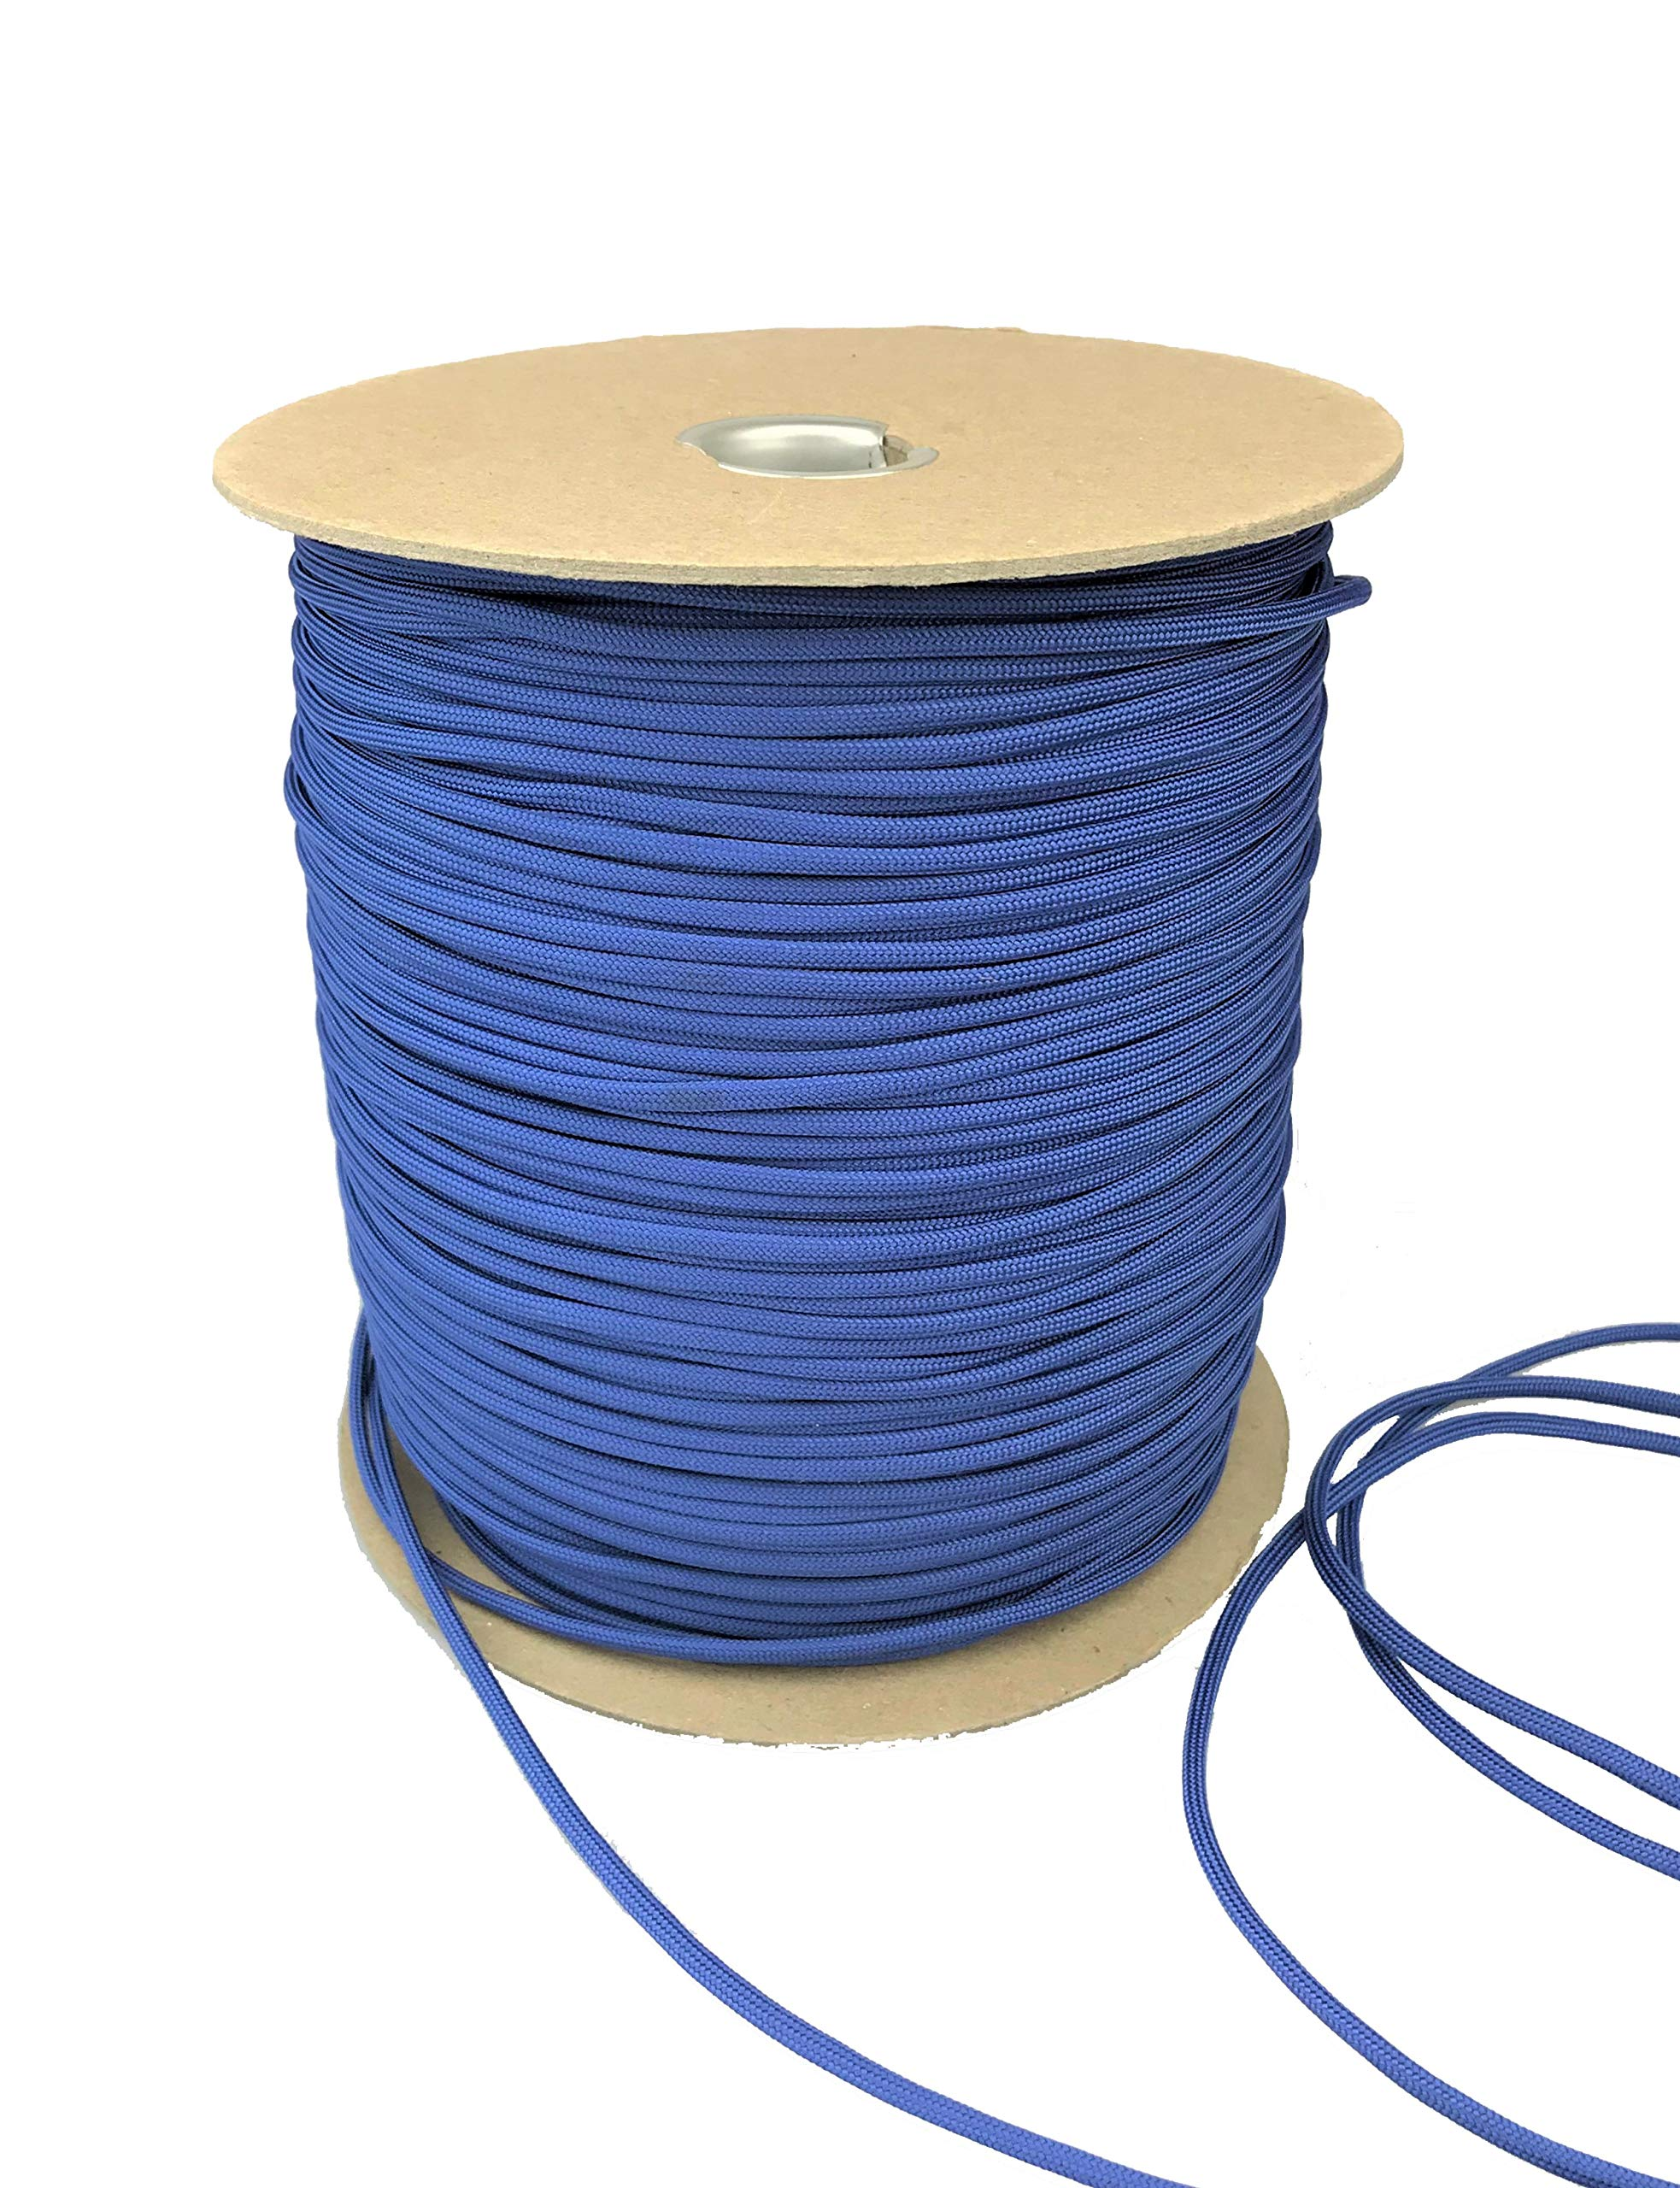 Paracord 550 Type III 7 Strand Multi-Purpose Parachute Cord in 1000 and 100 Foot Spools. Used for Camping, Hiking, Boating, Survival, and Crafting. 100% Nylon-Made in the USA (Royal Blue, 1000)